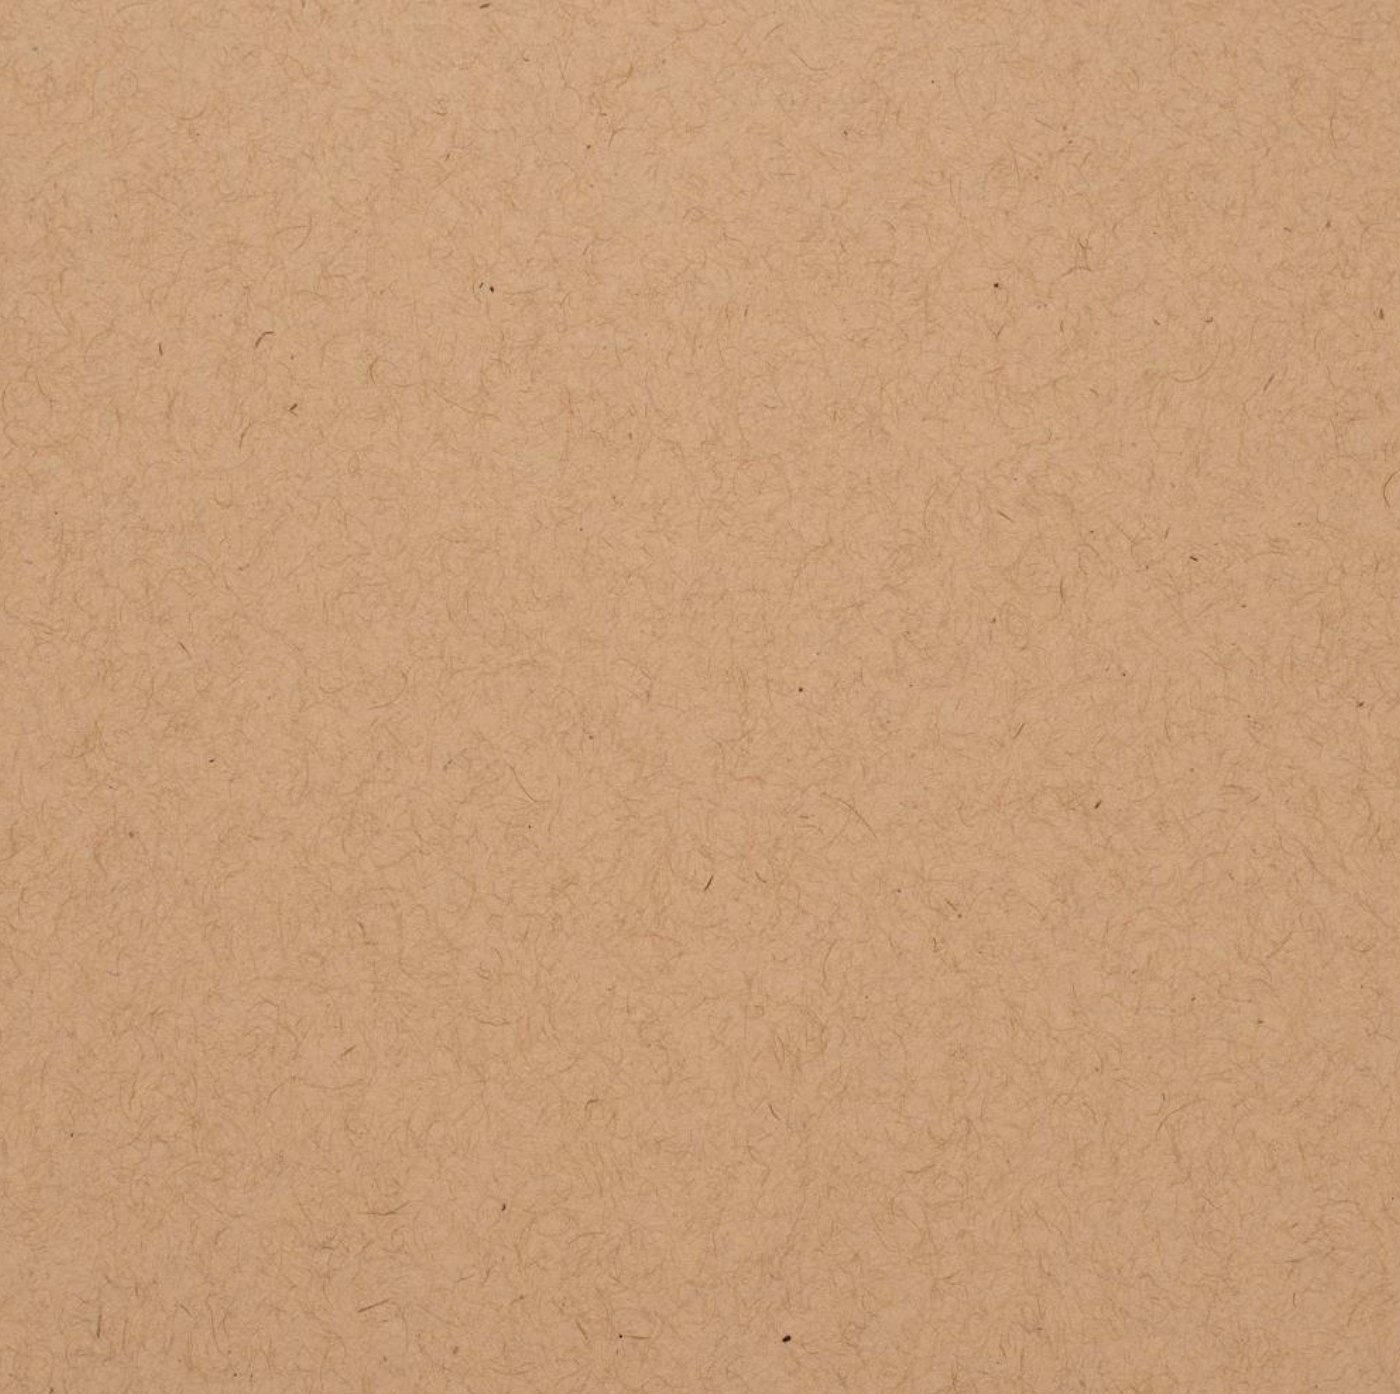 Bazzill Speckle Cardstock 12X12 Chip Stone